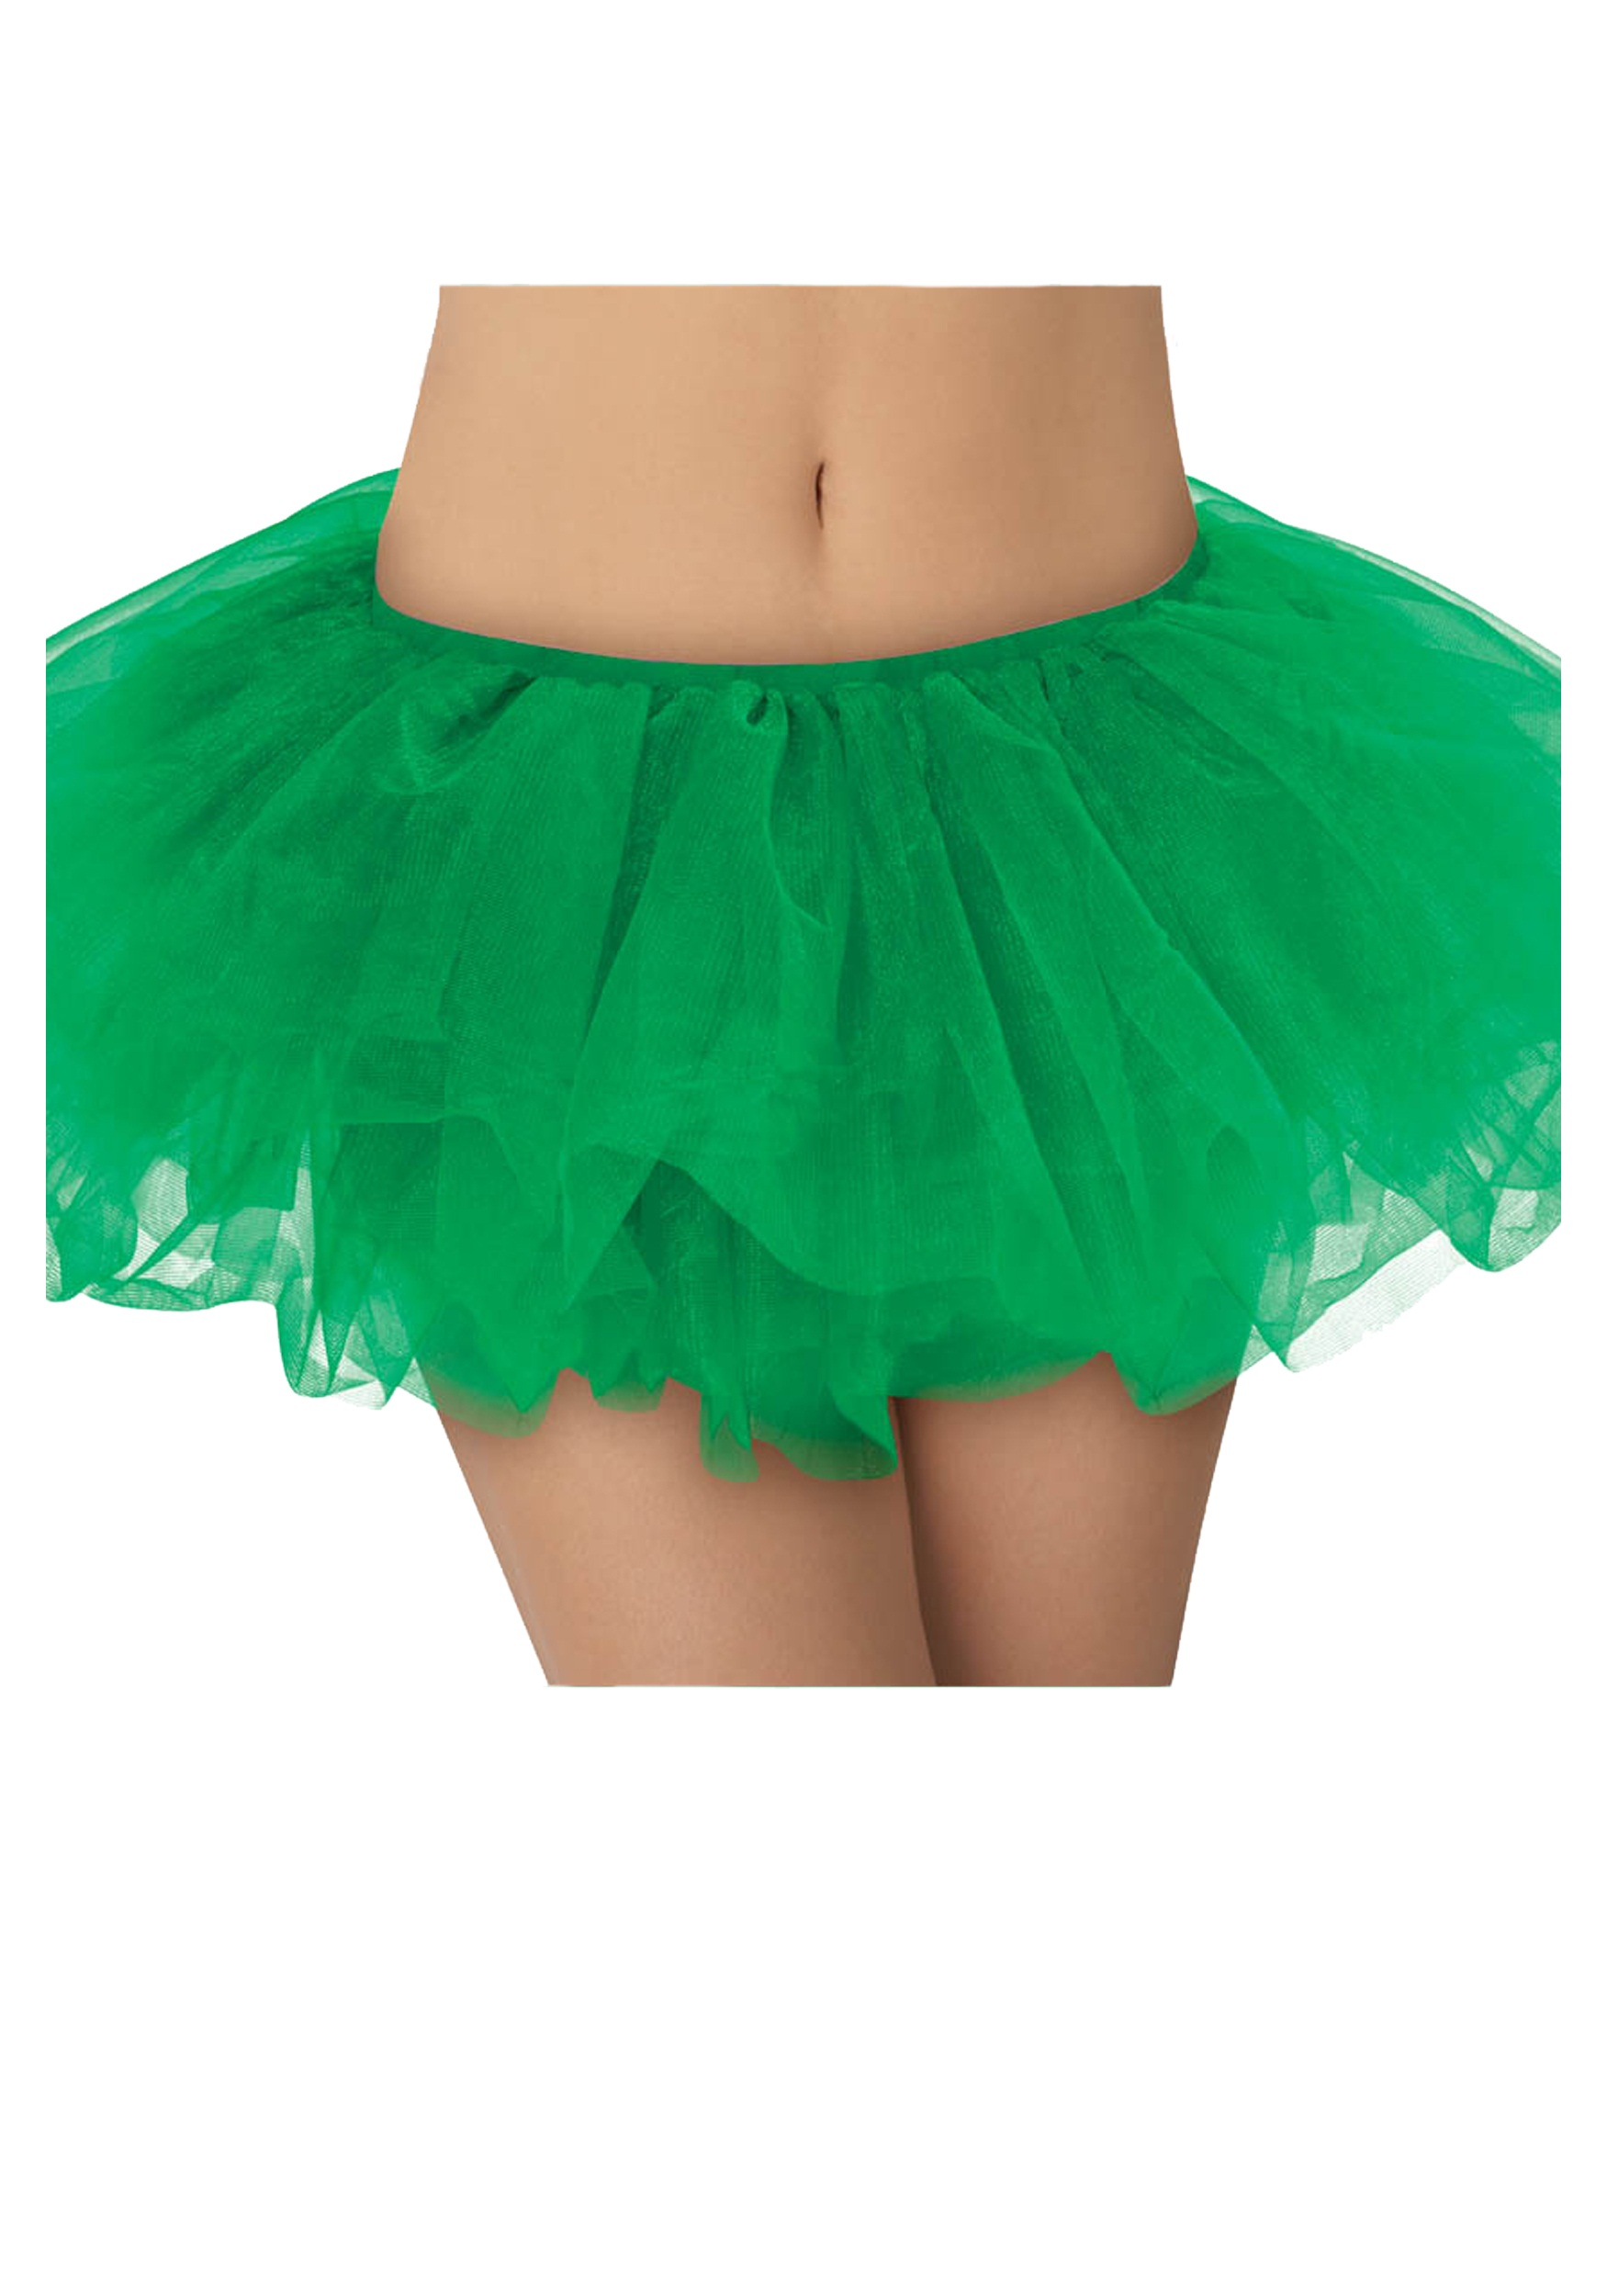 INOpets.com Anything for Pets Parents & Their Pets Green Tutu